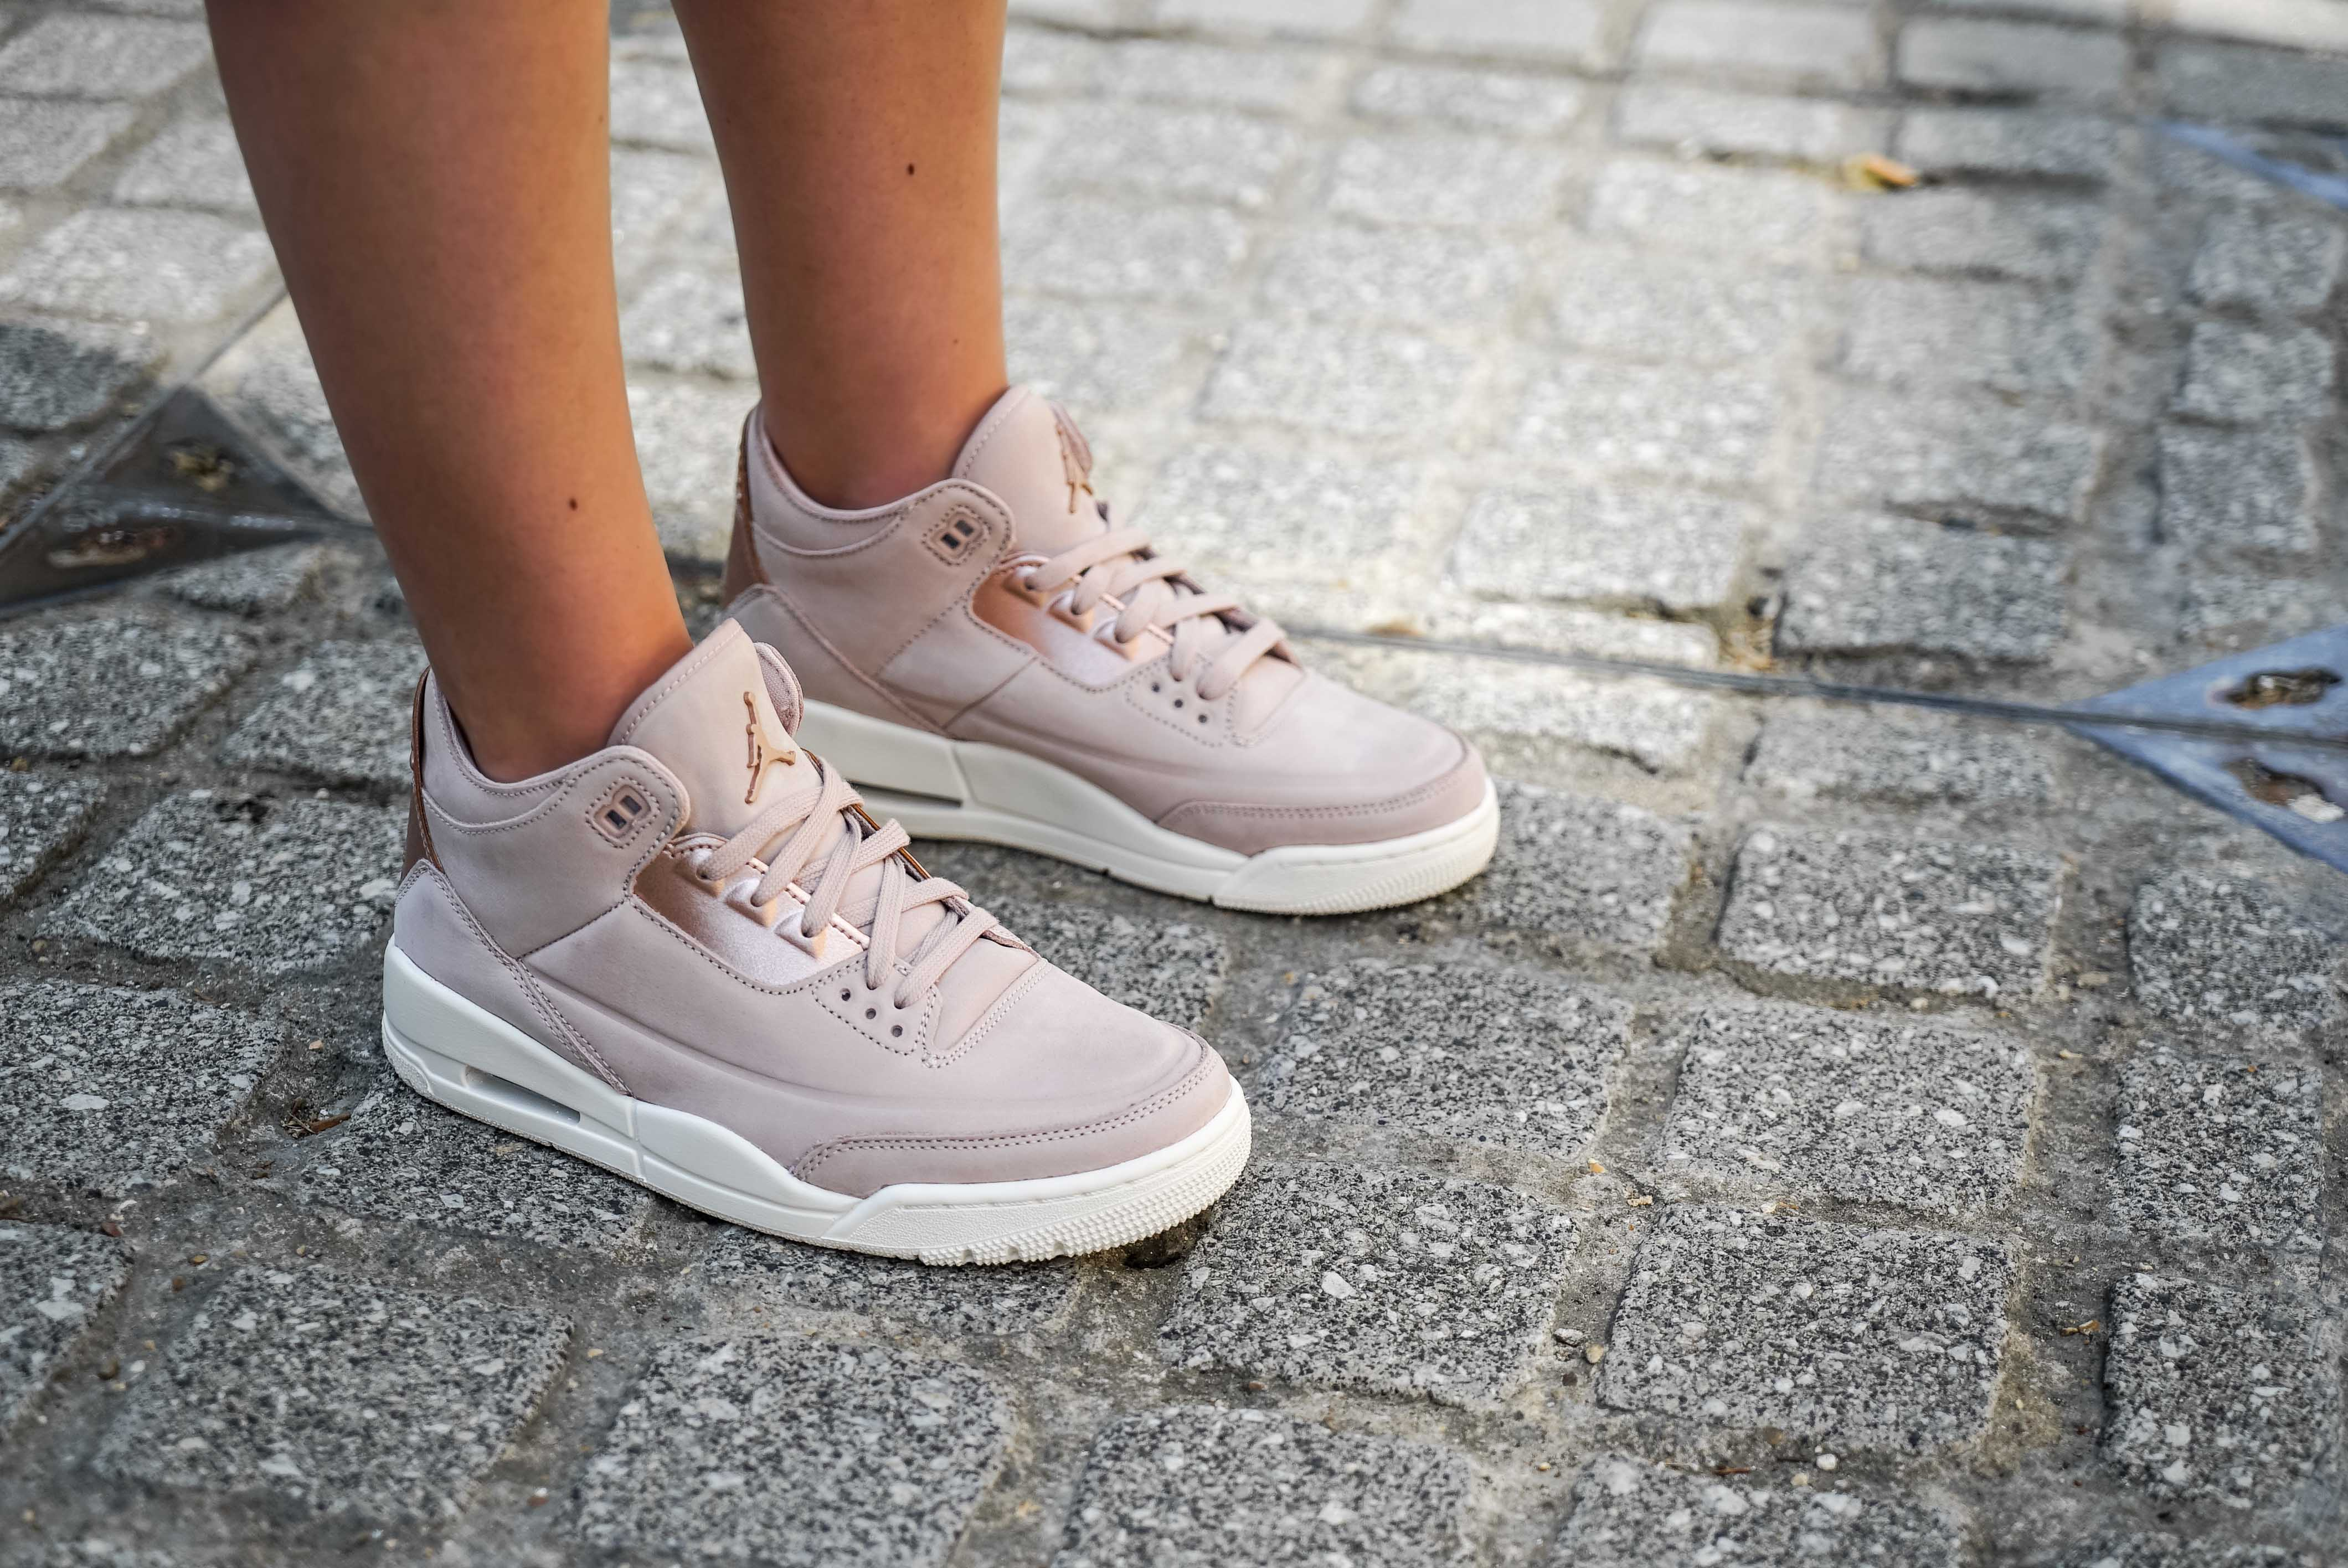 da18dd21c26 Dusty Pink Takes Over The Nike Air Jordan 3 | Style Guides | The ...